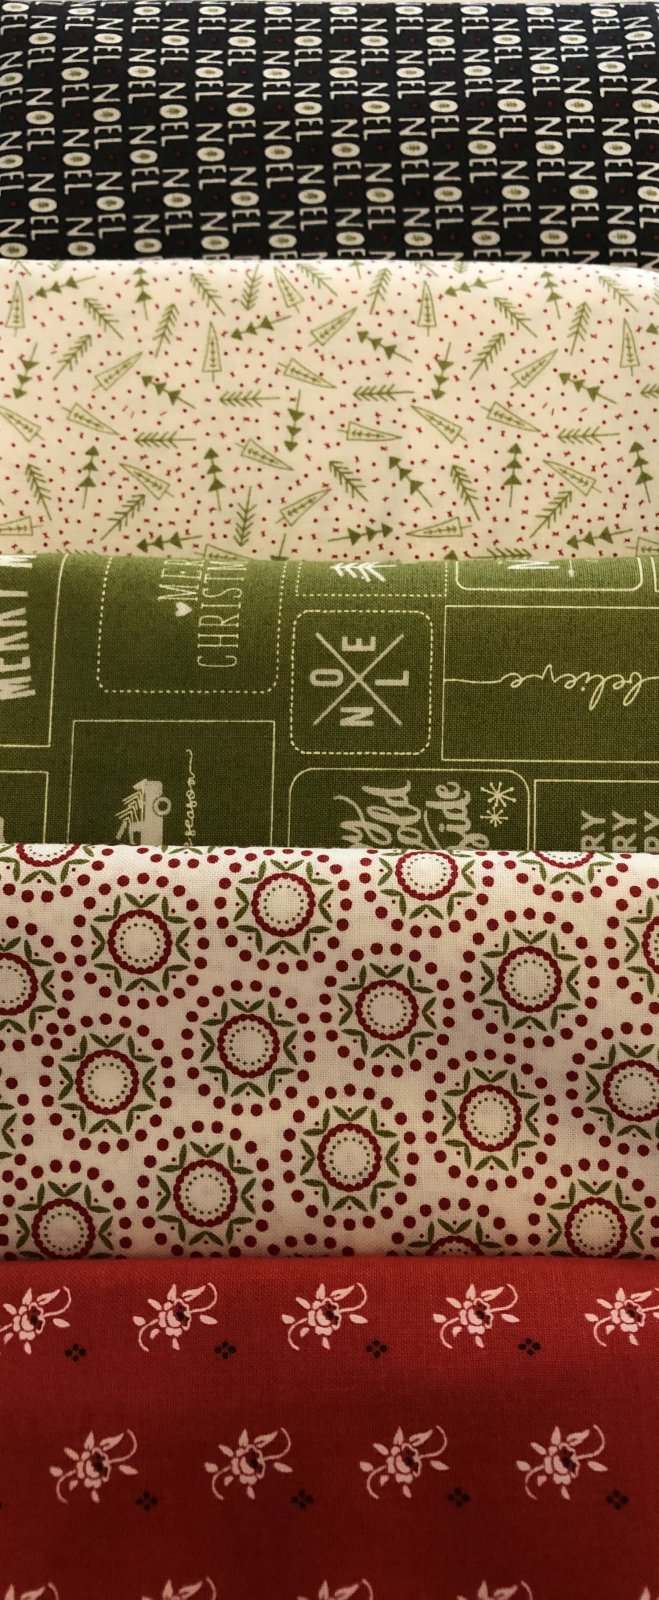 5 - 1 yd Bundle Red and Green Christmas